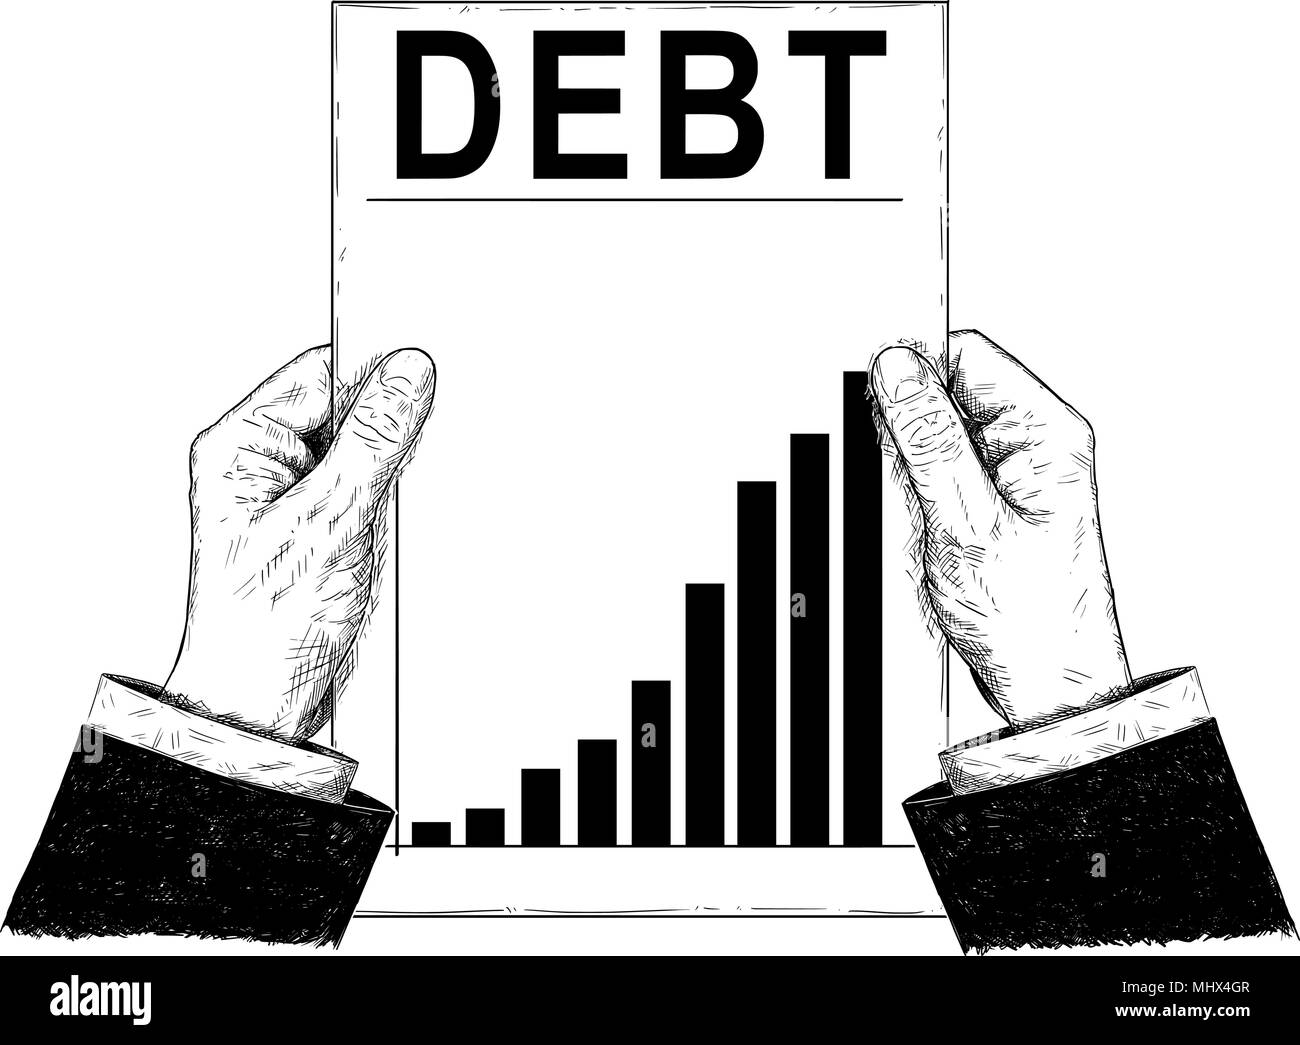 Vector Artistic Illustration or Drawing of Businessman Hands Holding Document With Raising Debt Chart or Graph - Stock Image